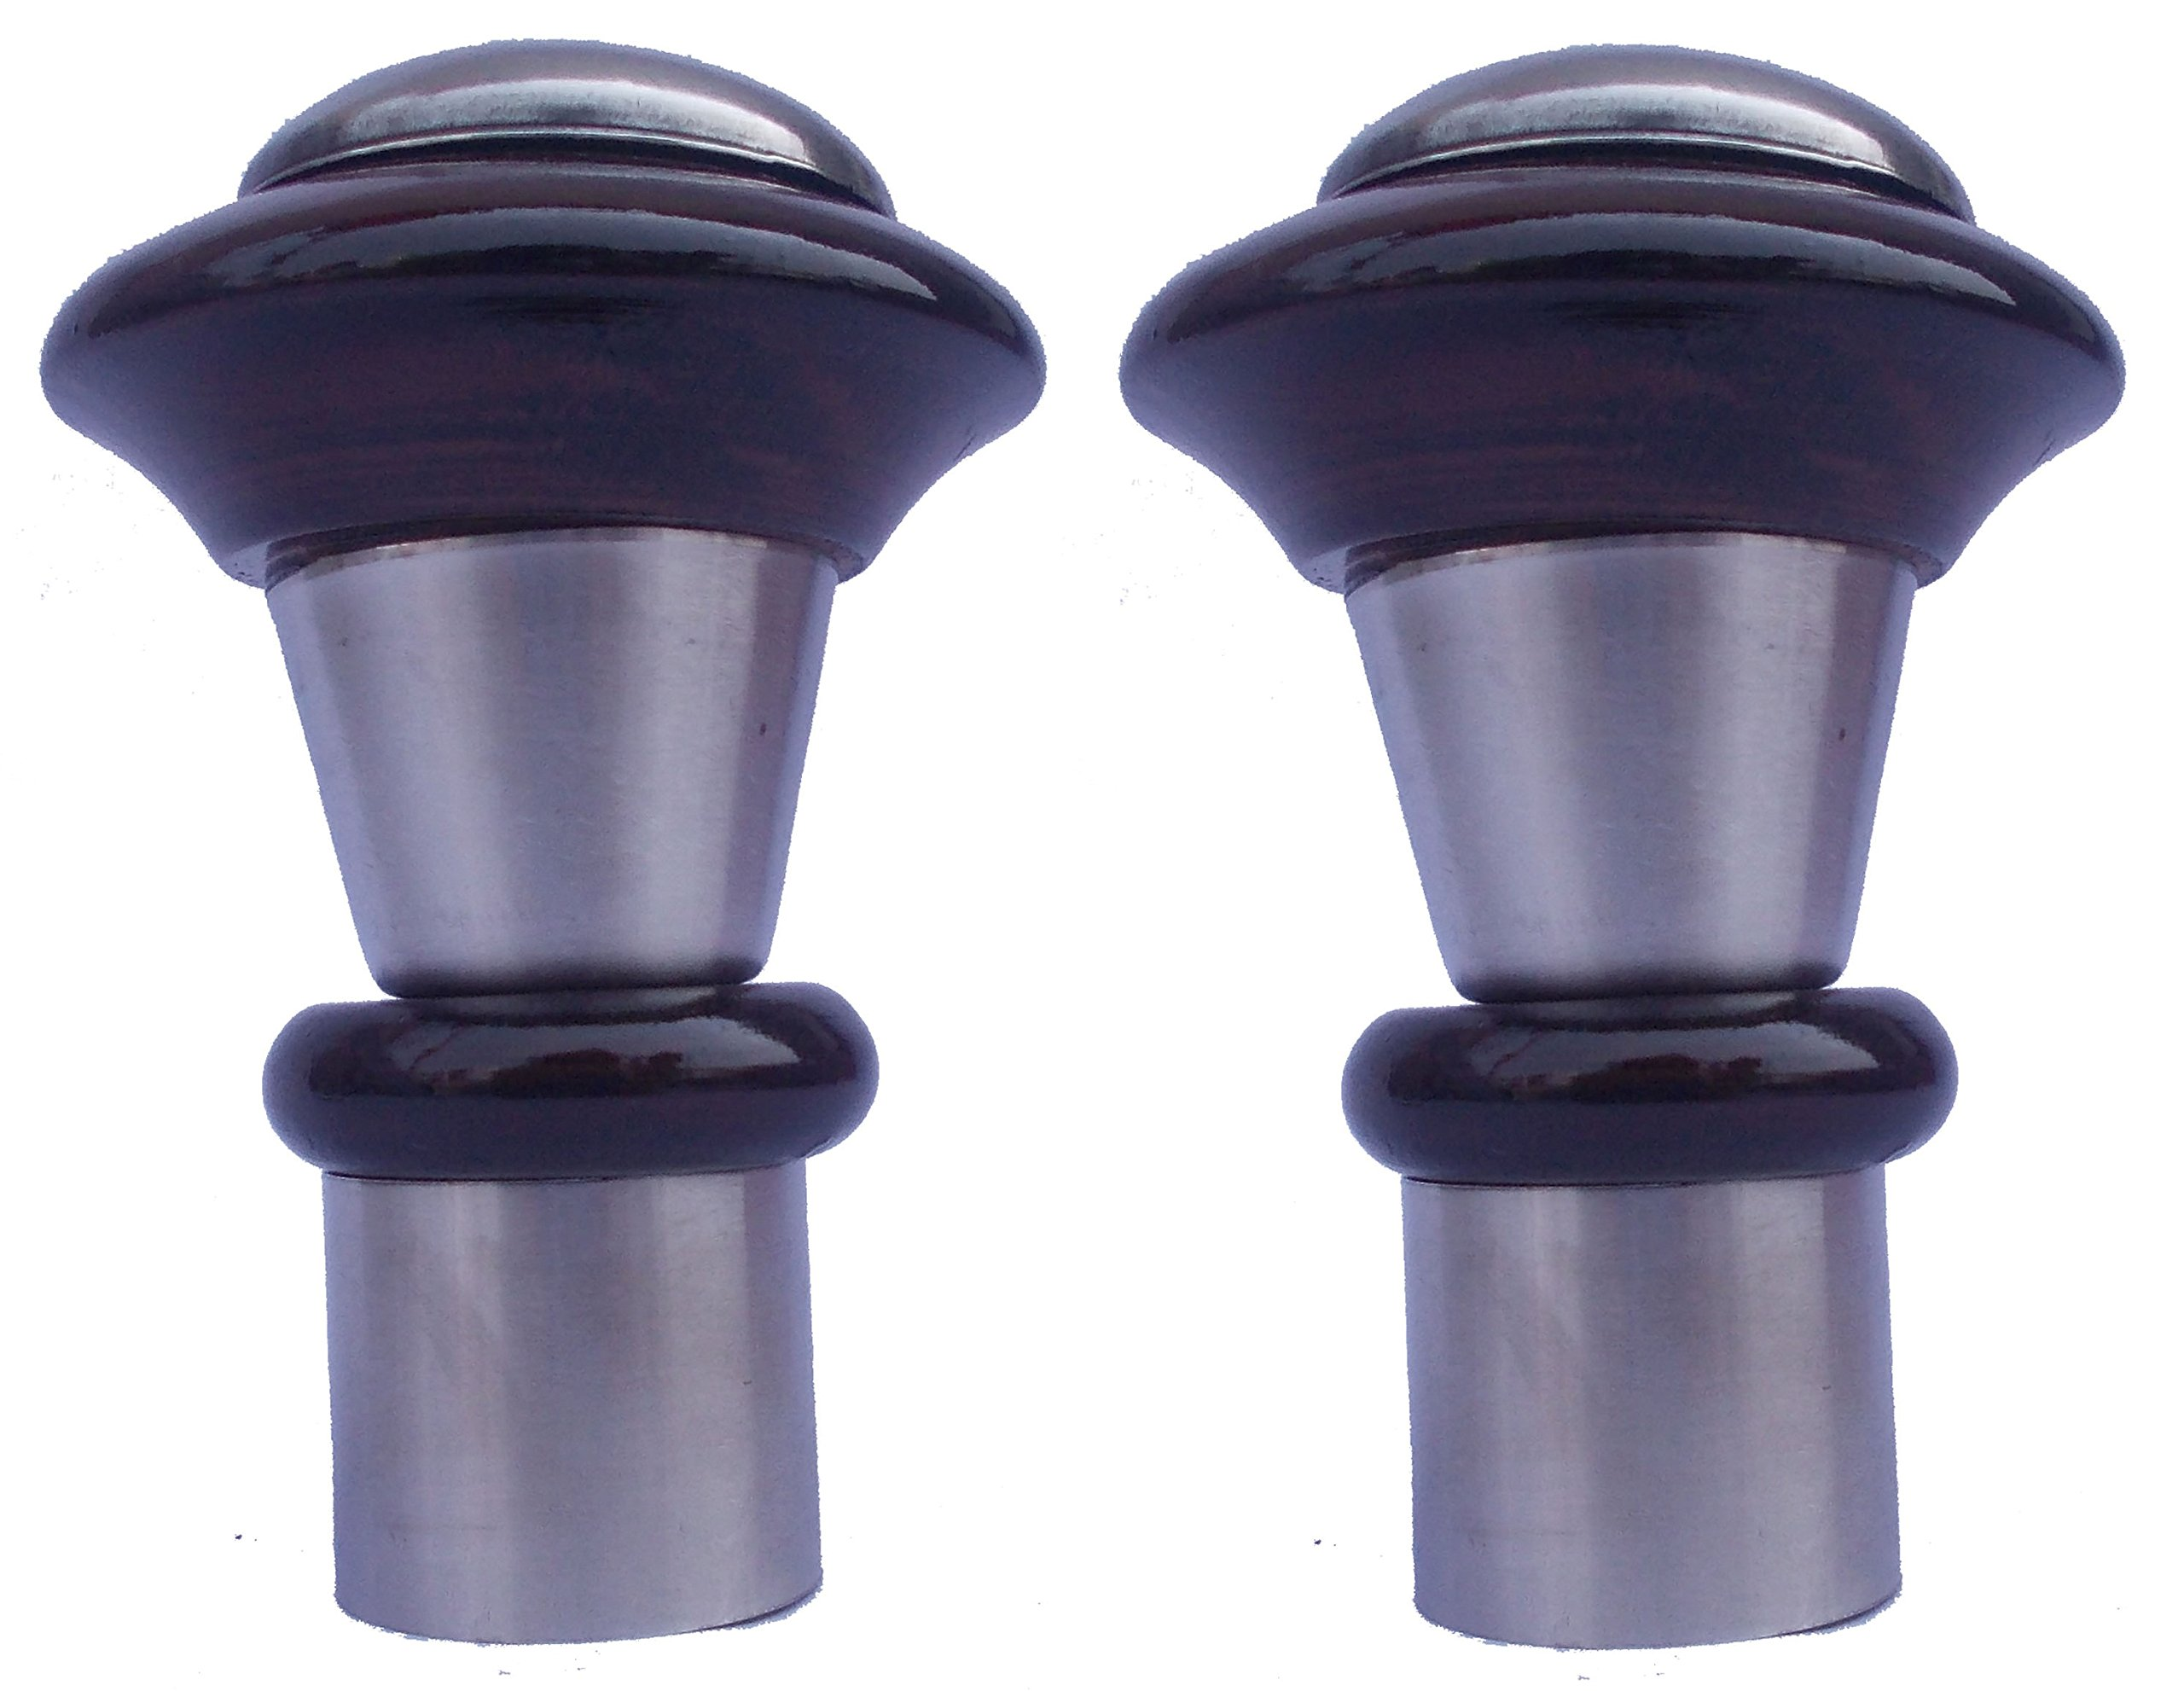 2 x Stainless Steel Wood Curtain Rod Ends Designer Finials Caps